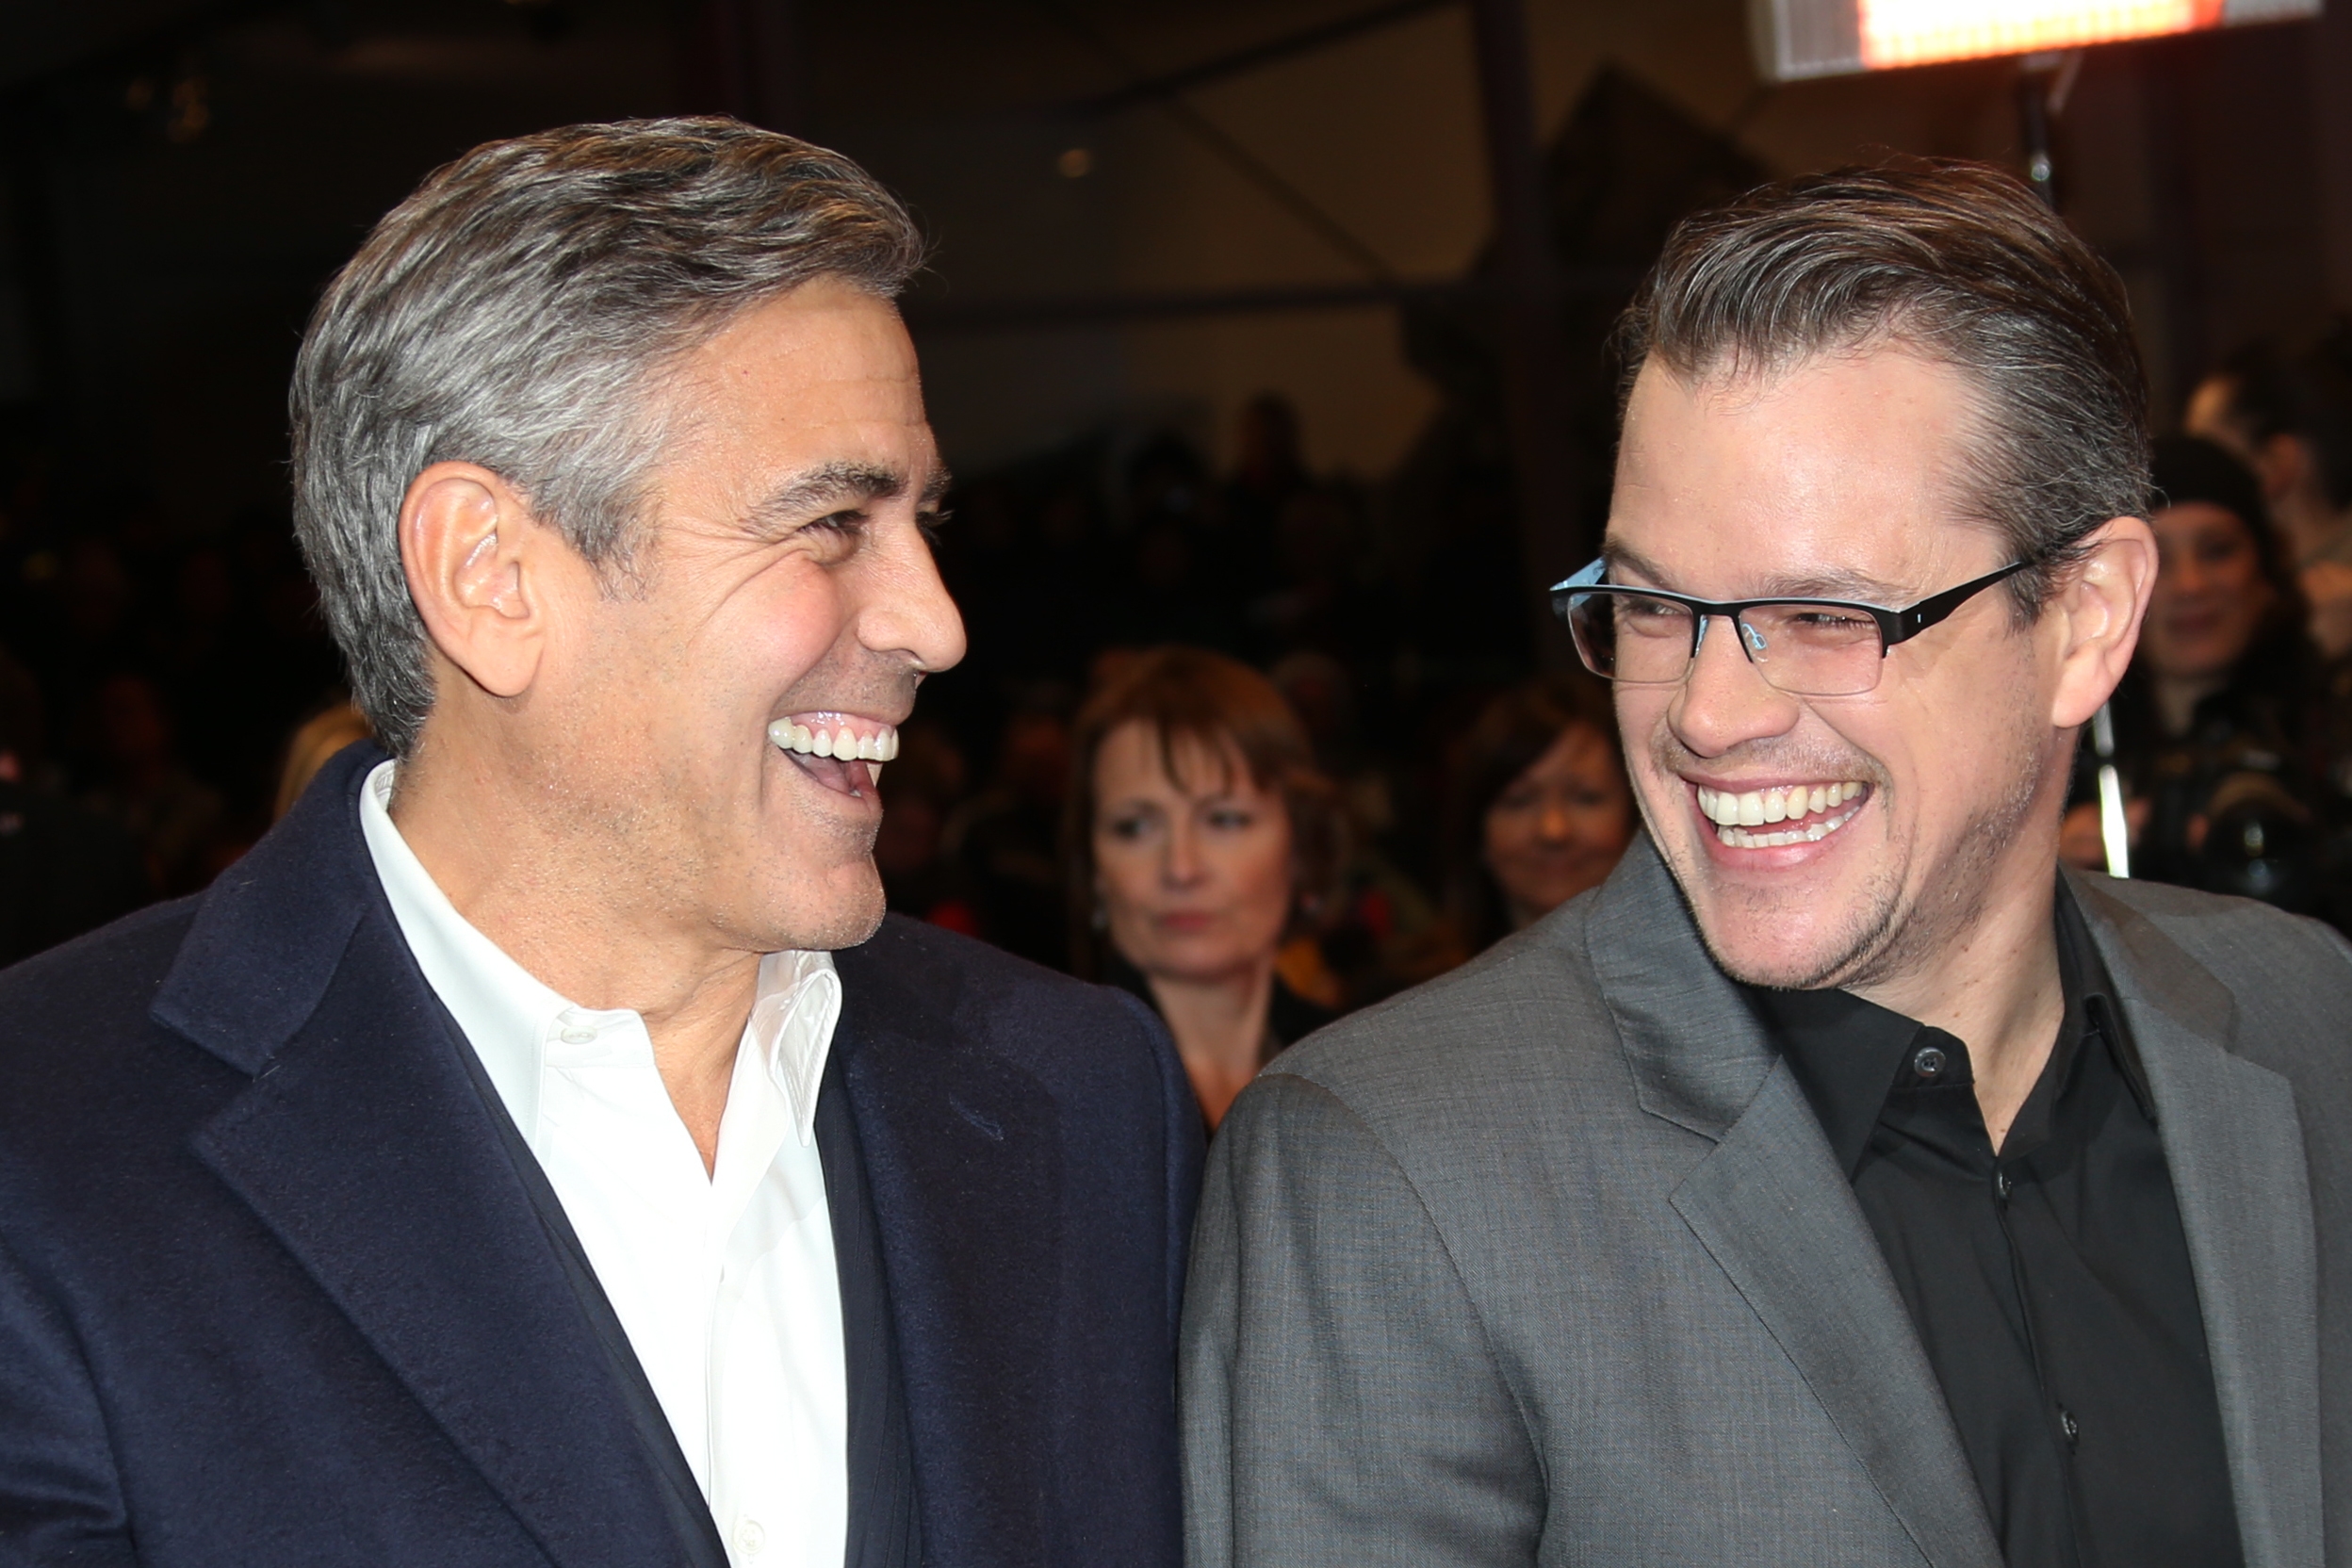 Matt Damon won't advise George Clooney when it comes to his twins